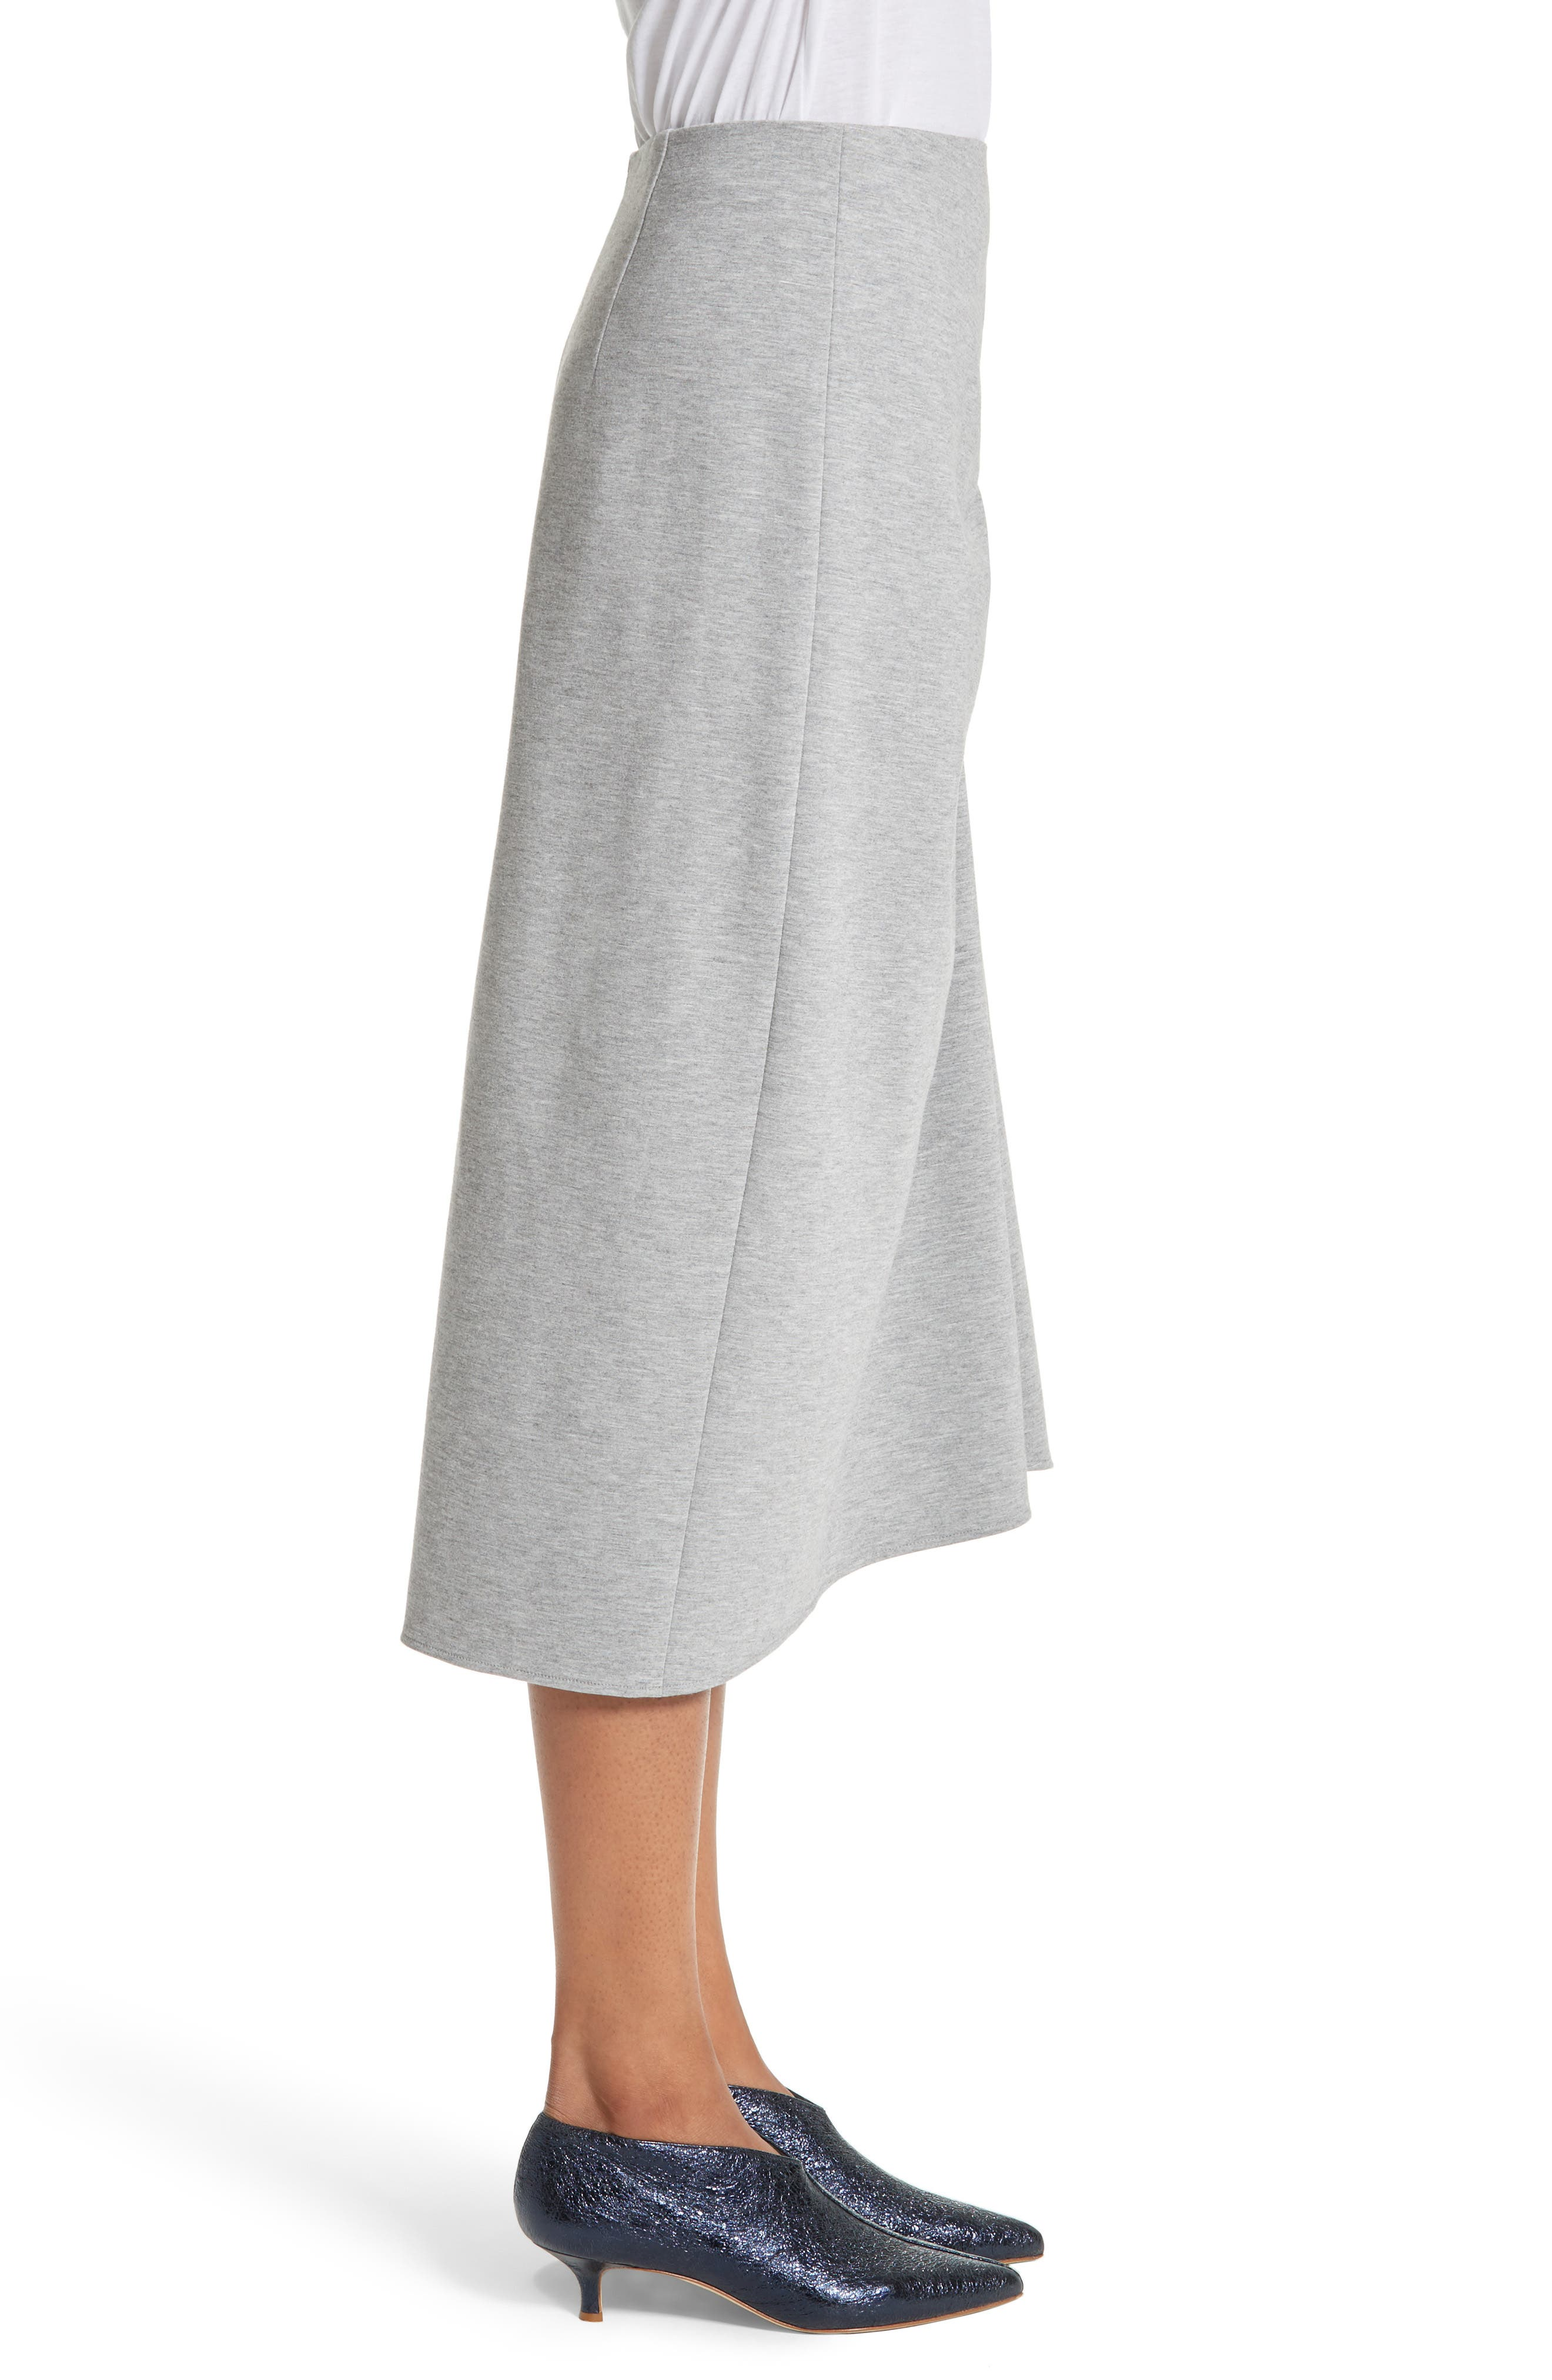 Ruched Midi Skirt,                             Alternate thumbnail 3, color,                             Heather Grey